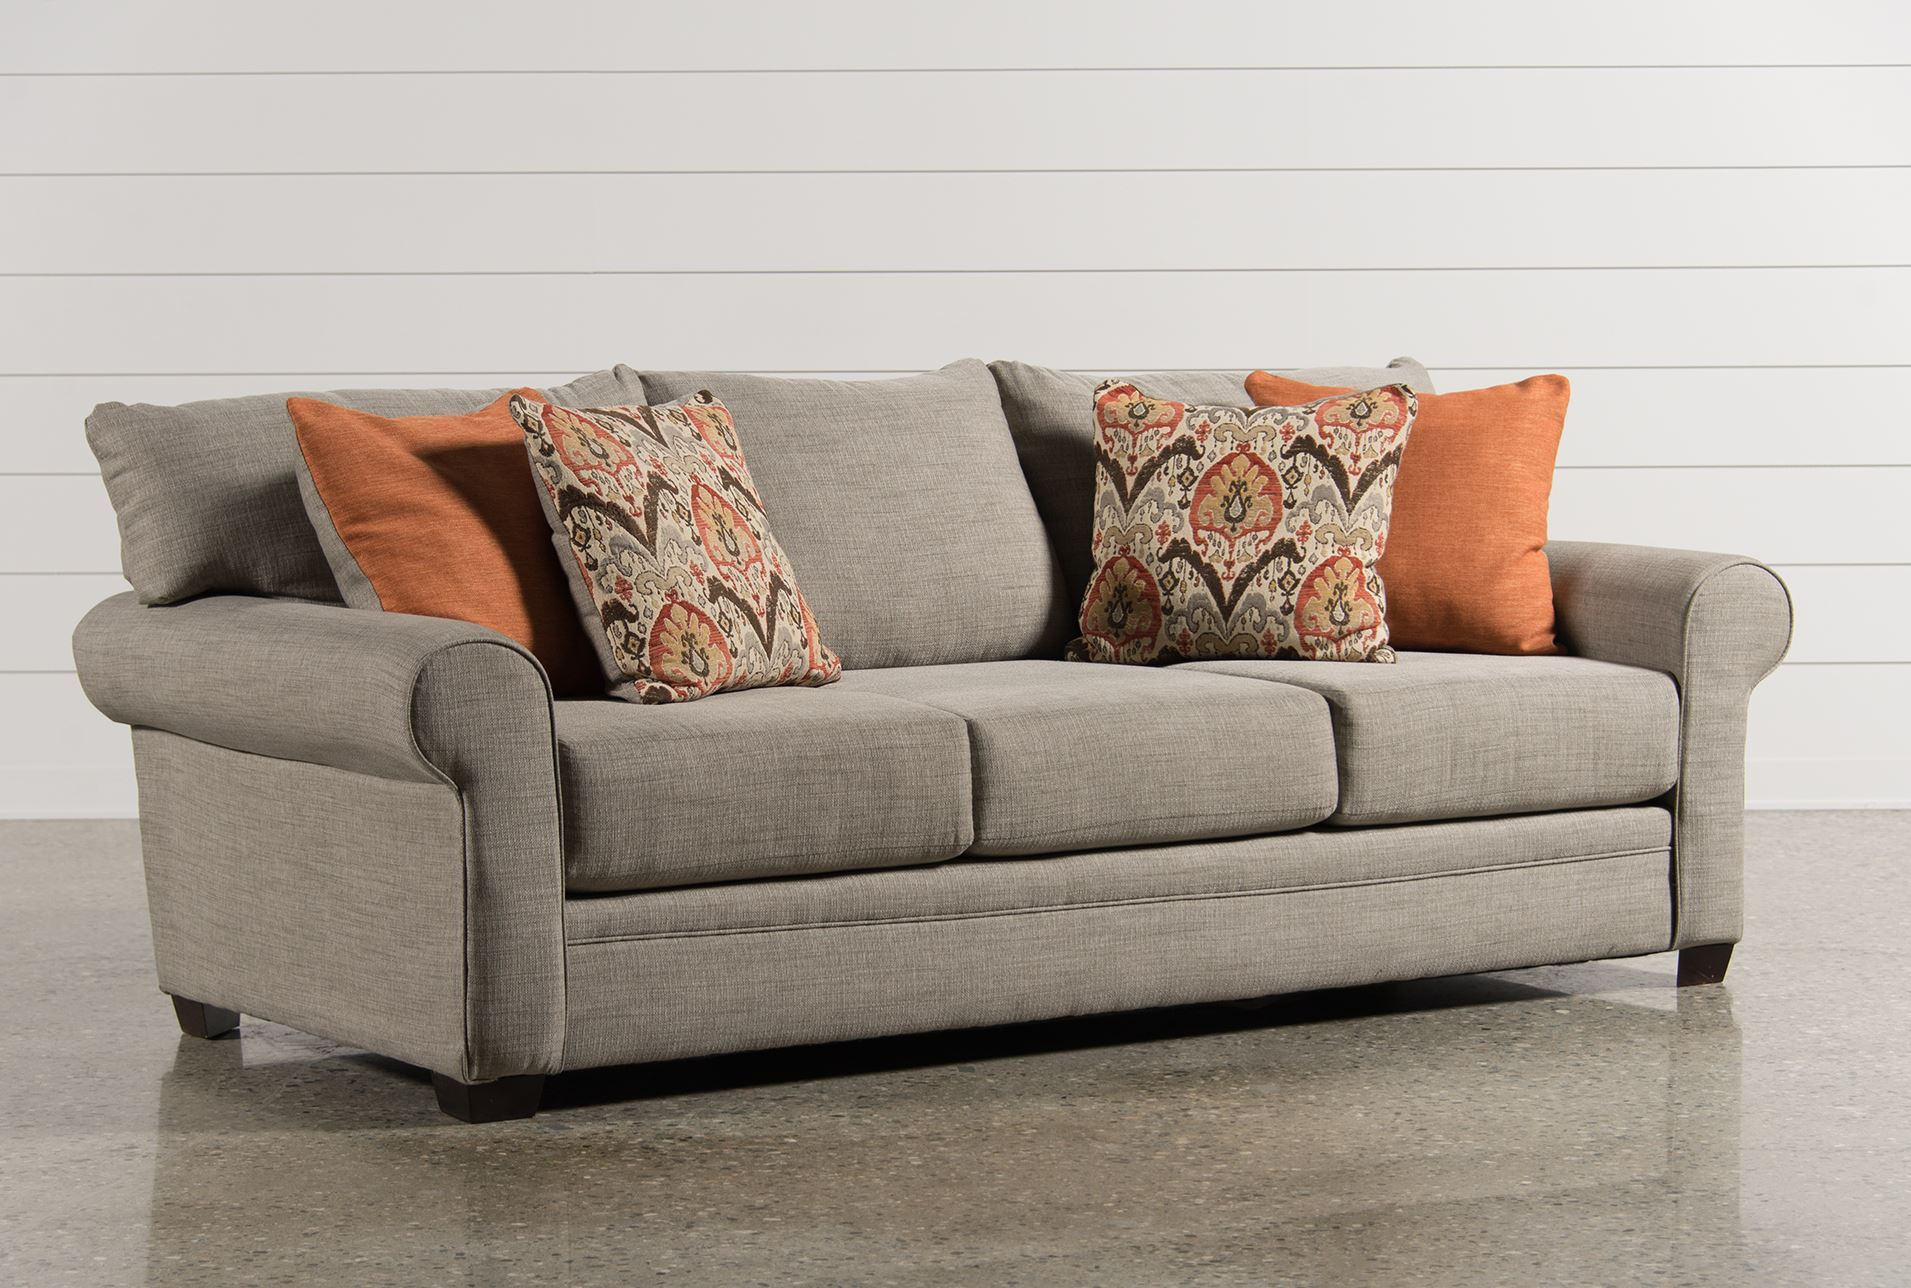 fabric couches couch, couch for sale rags gray rectangle foot couch city black pillow box DZJUZKF